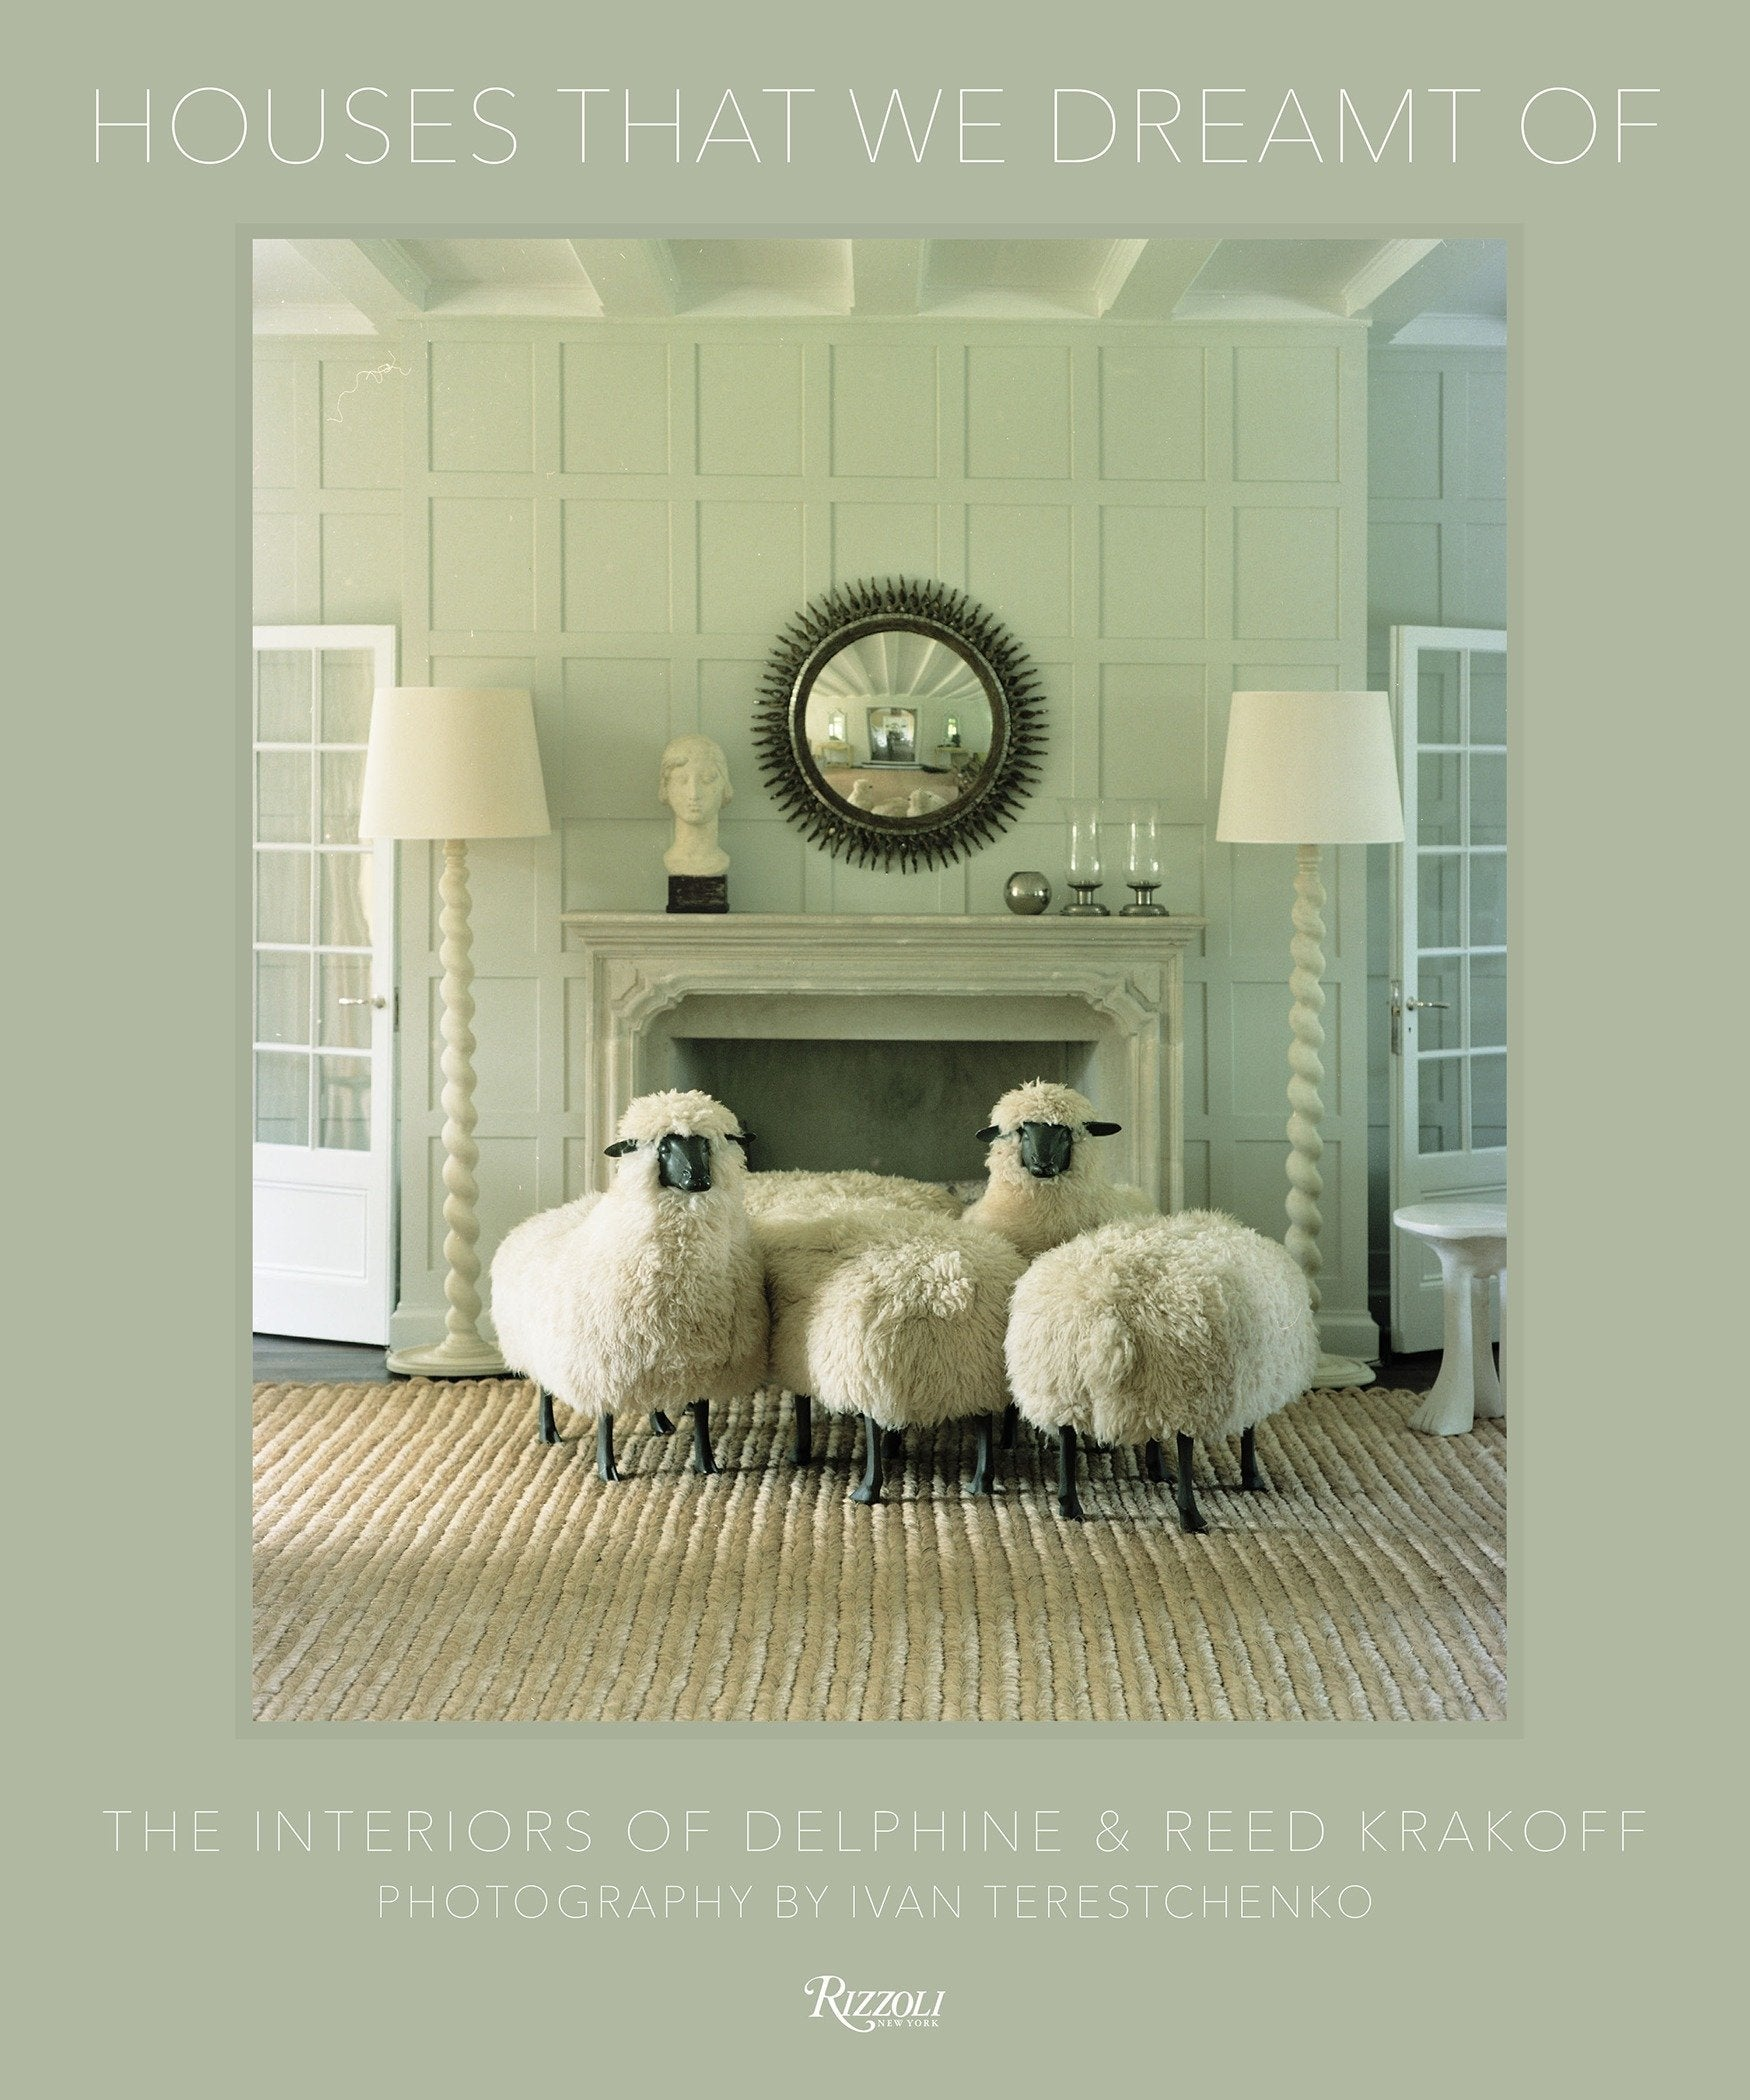 Houses That We Dreamt Of: The Interiors of Delphine and Reed Krakoff - CARLYLE AVENUE